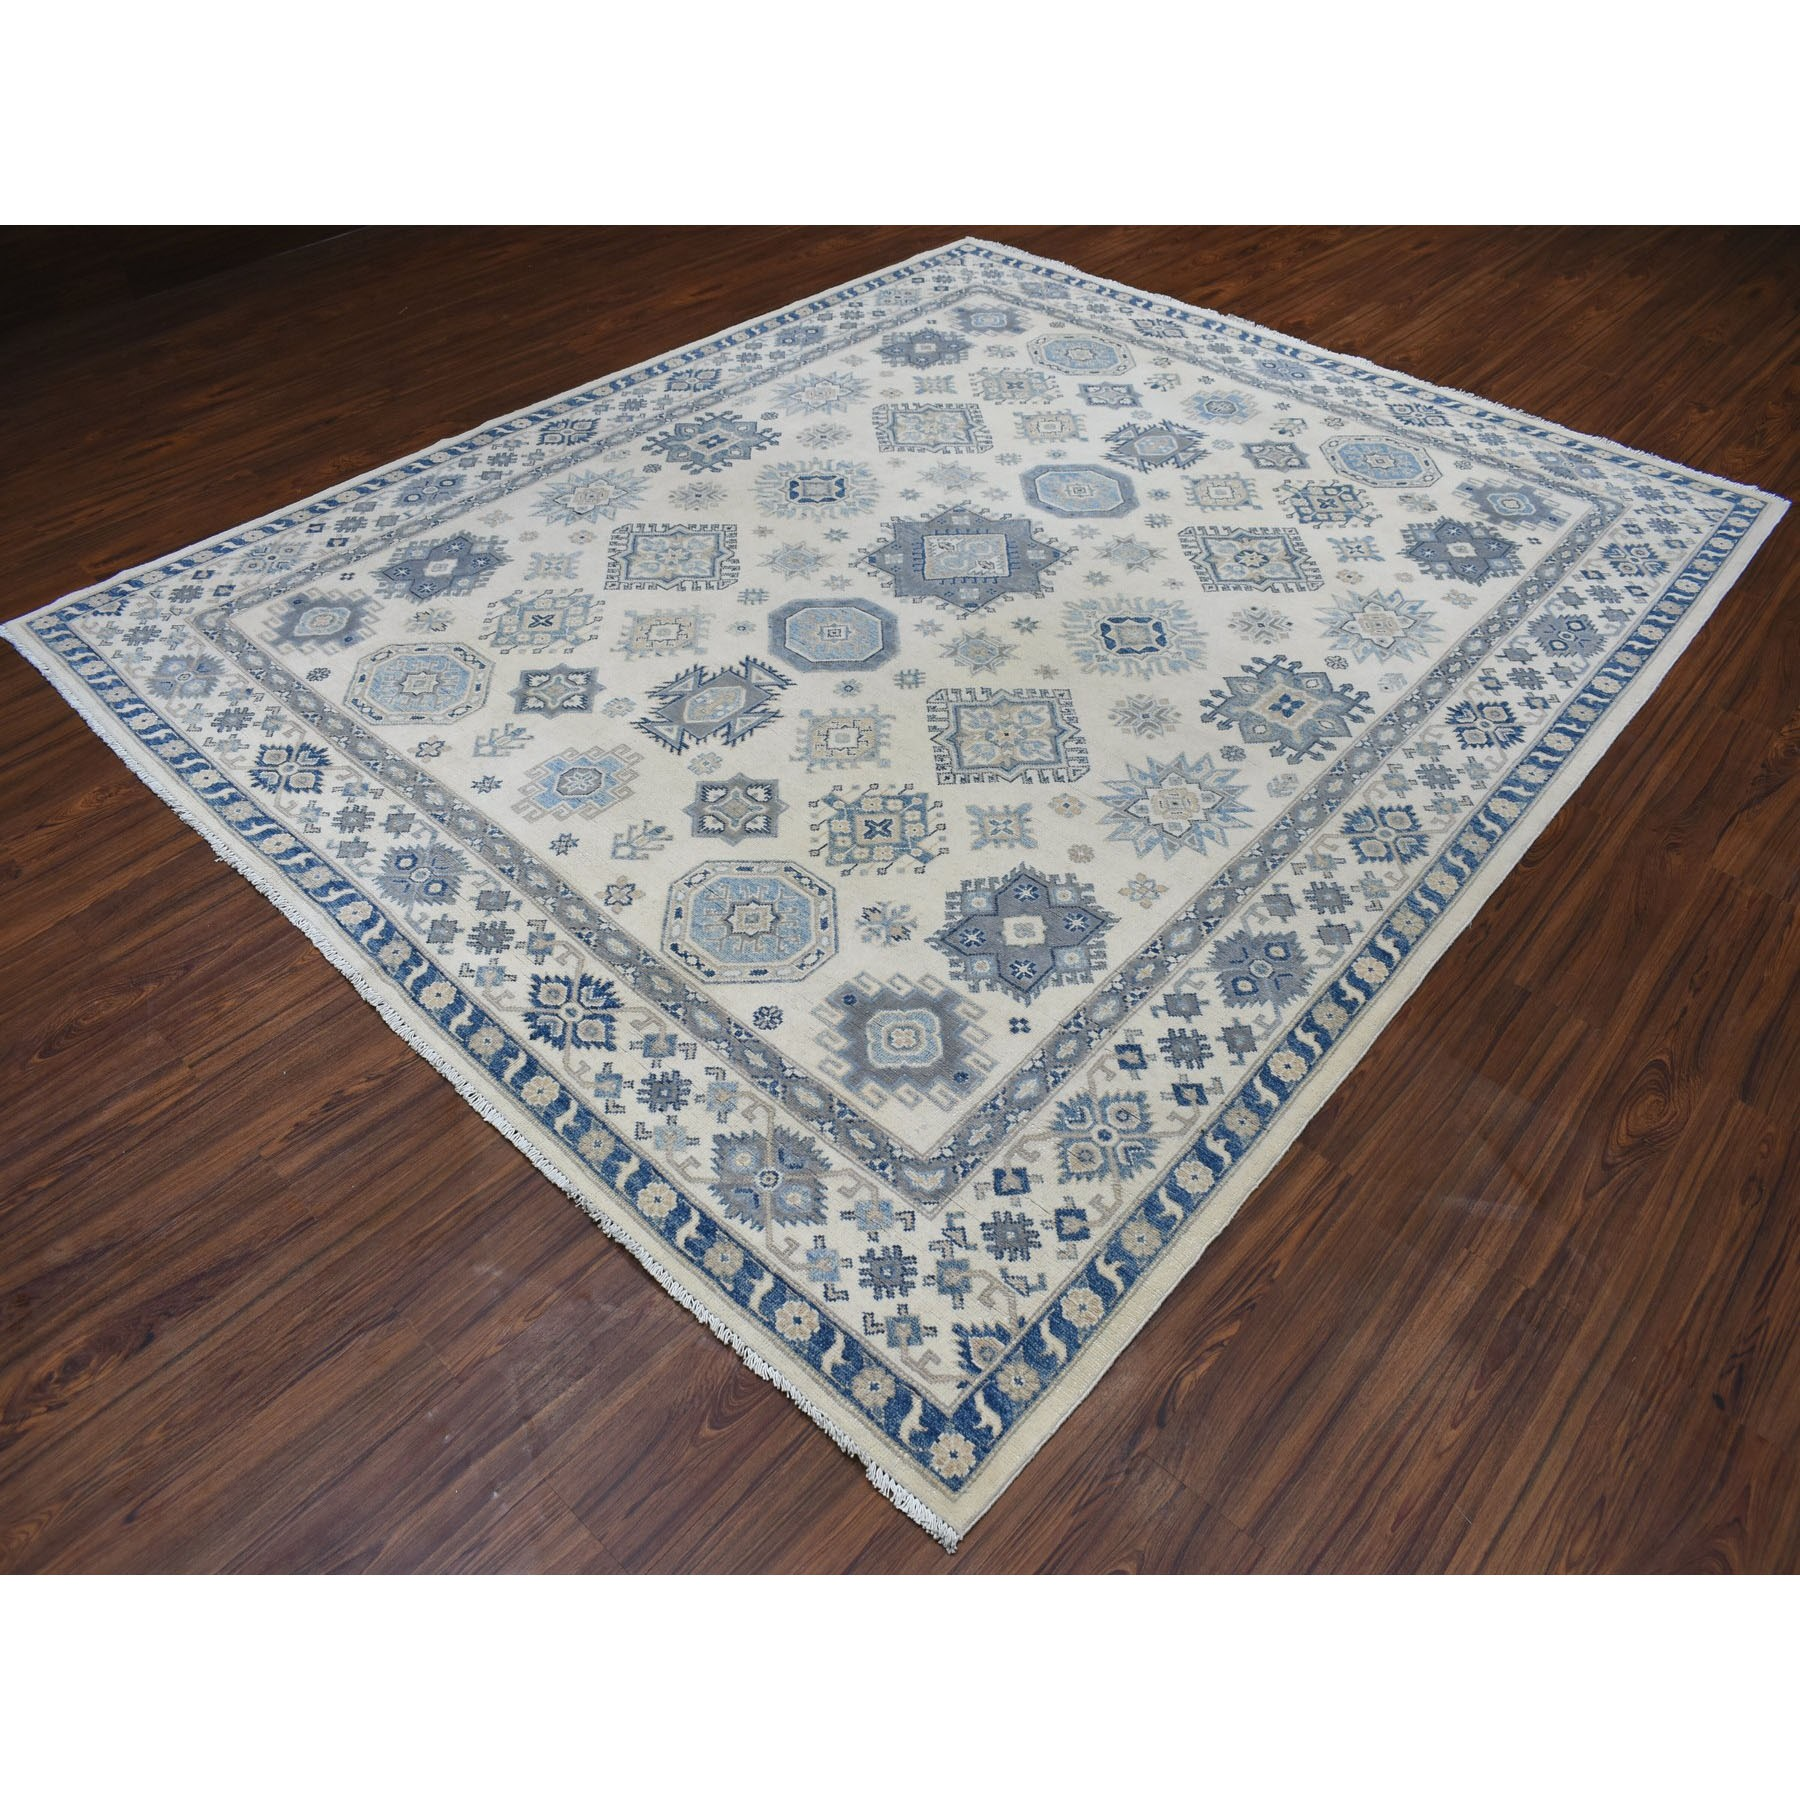 8-2 x9-7  Ivory All Over Design Caucasian Vintage Look Kazak Hand Knotted Pure Wool Oriental Rug